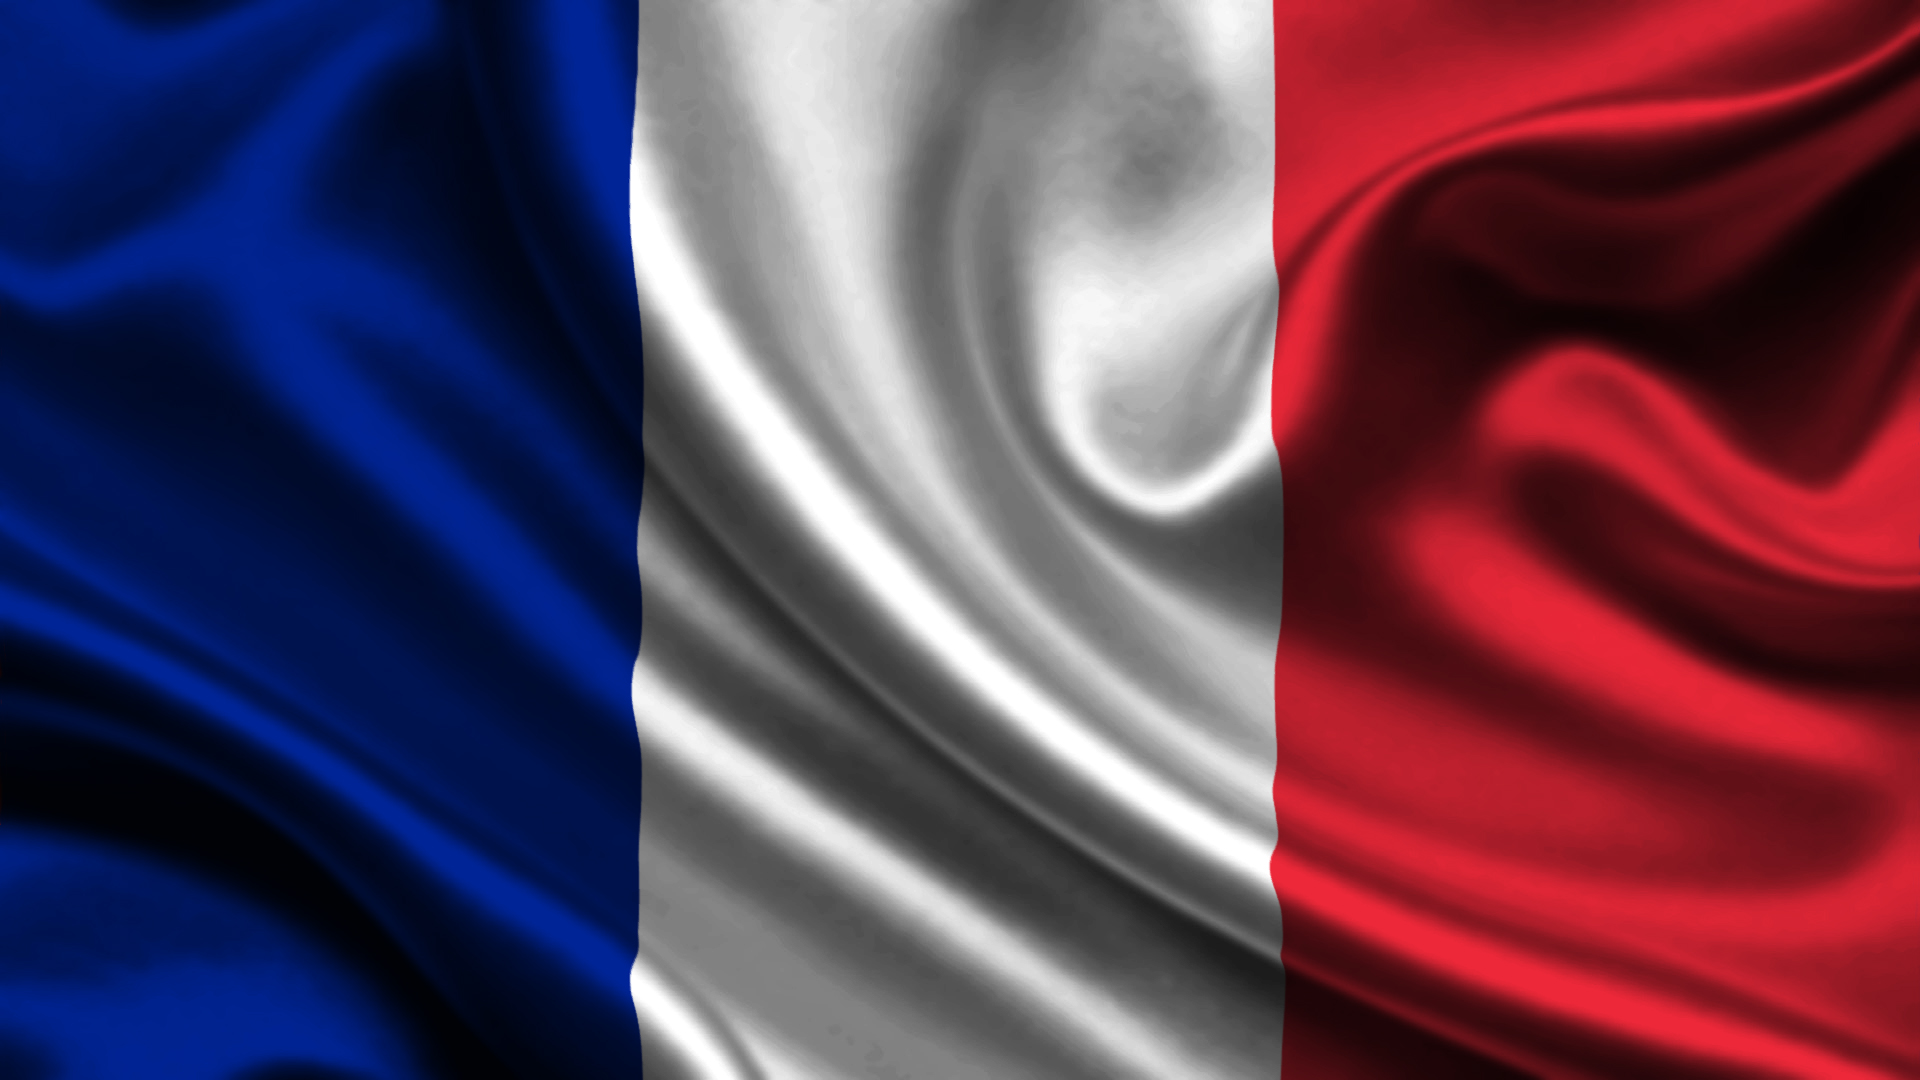 french-flag-wallpaper-hd